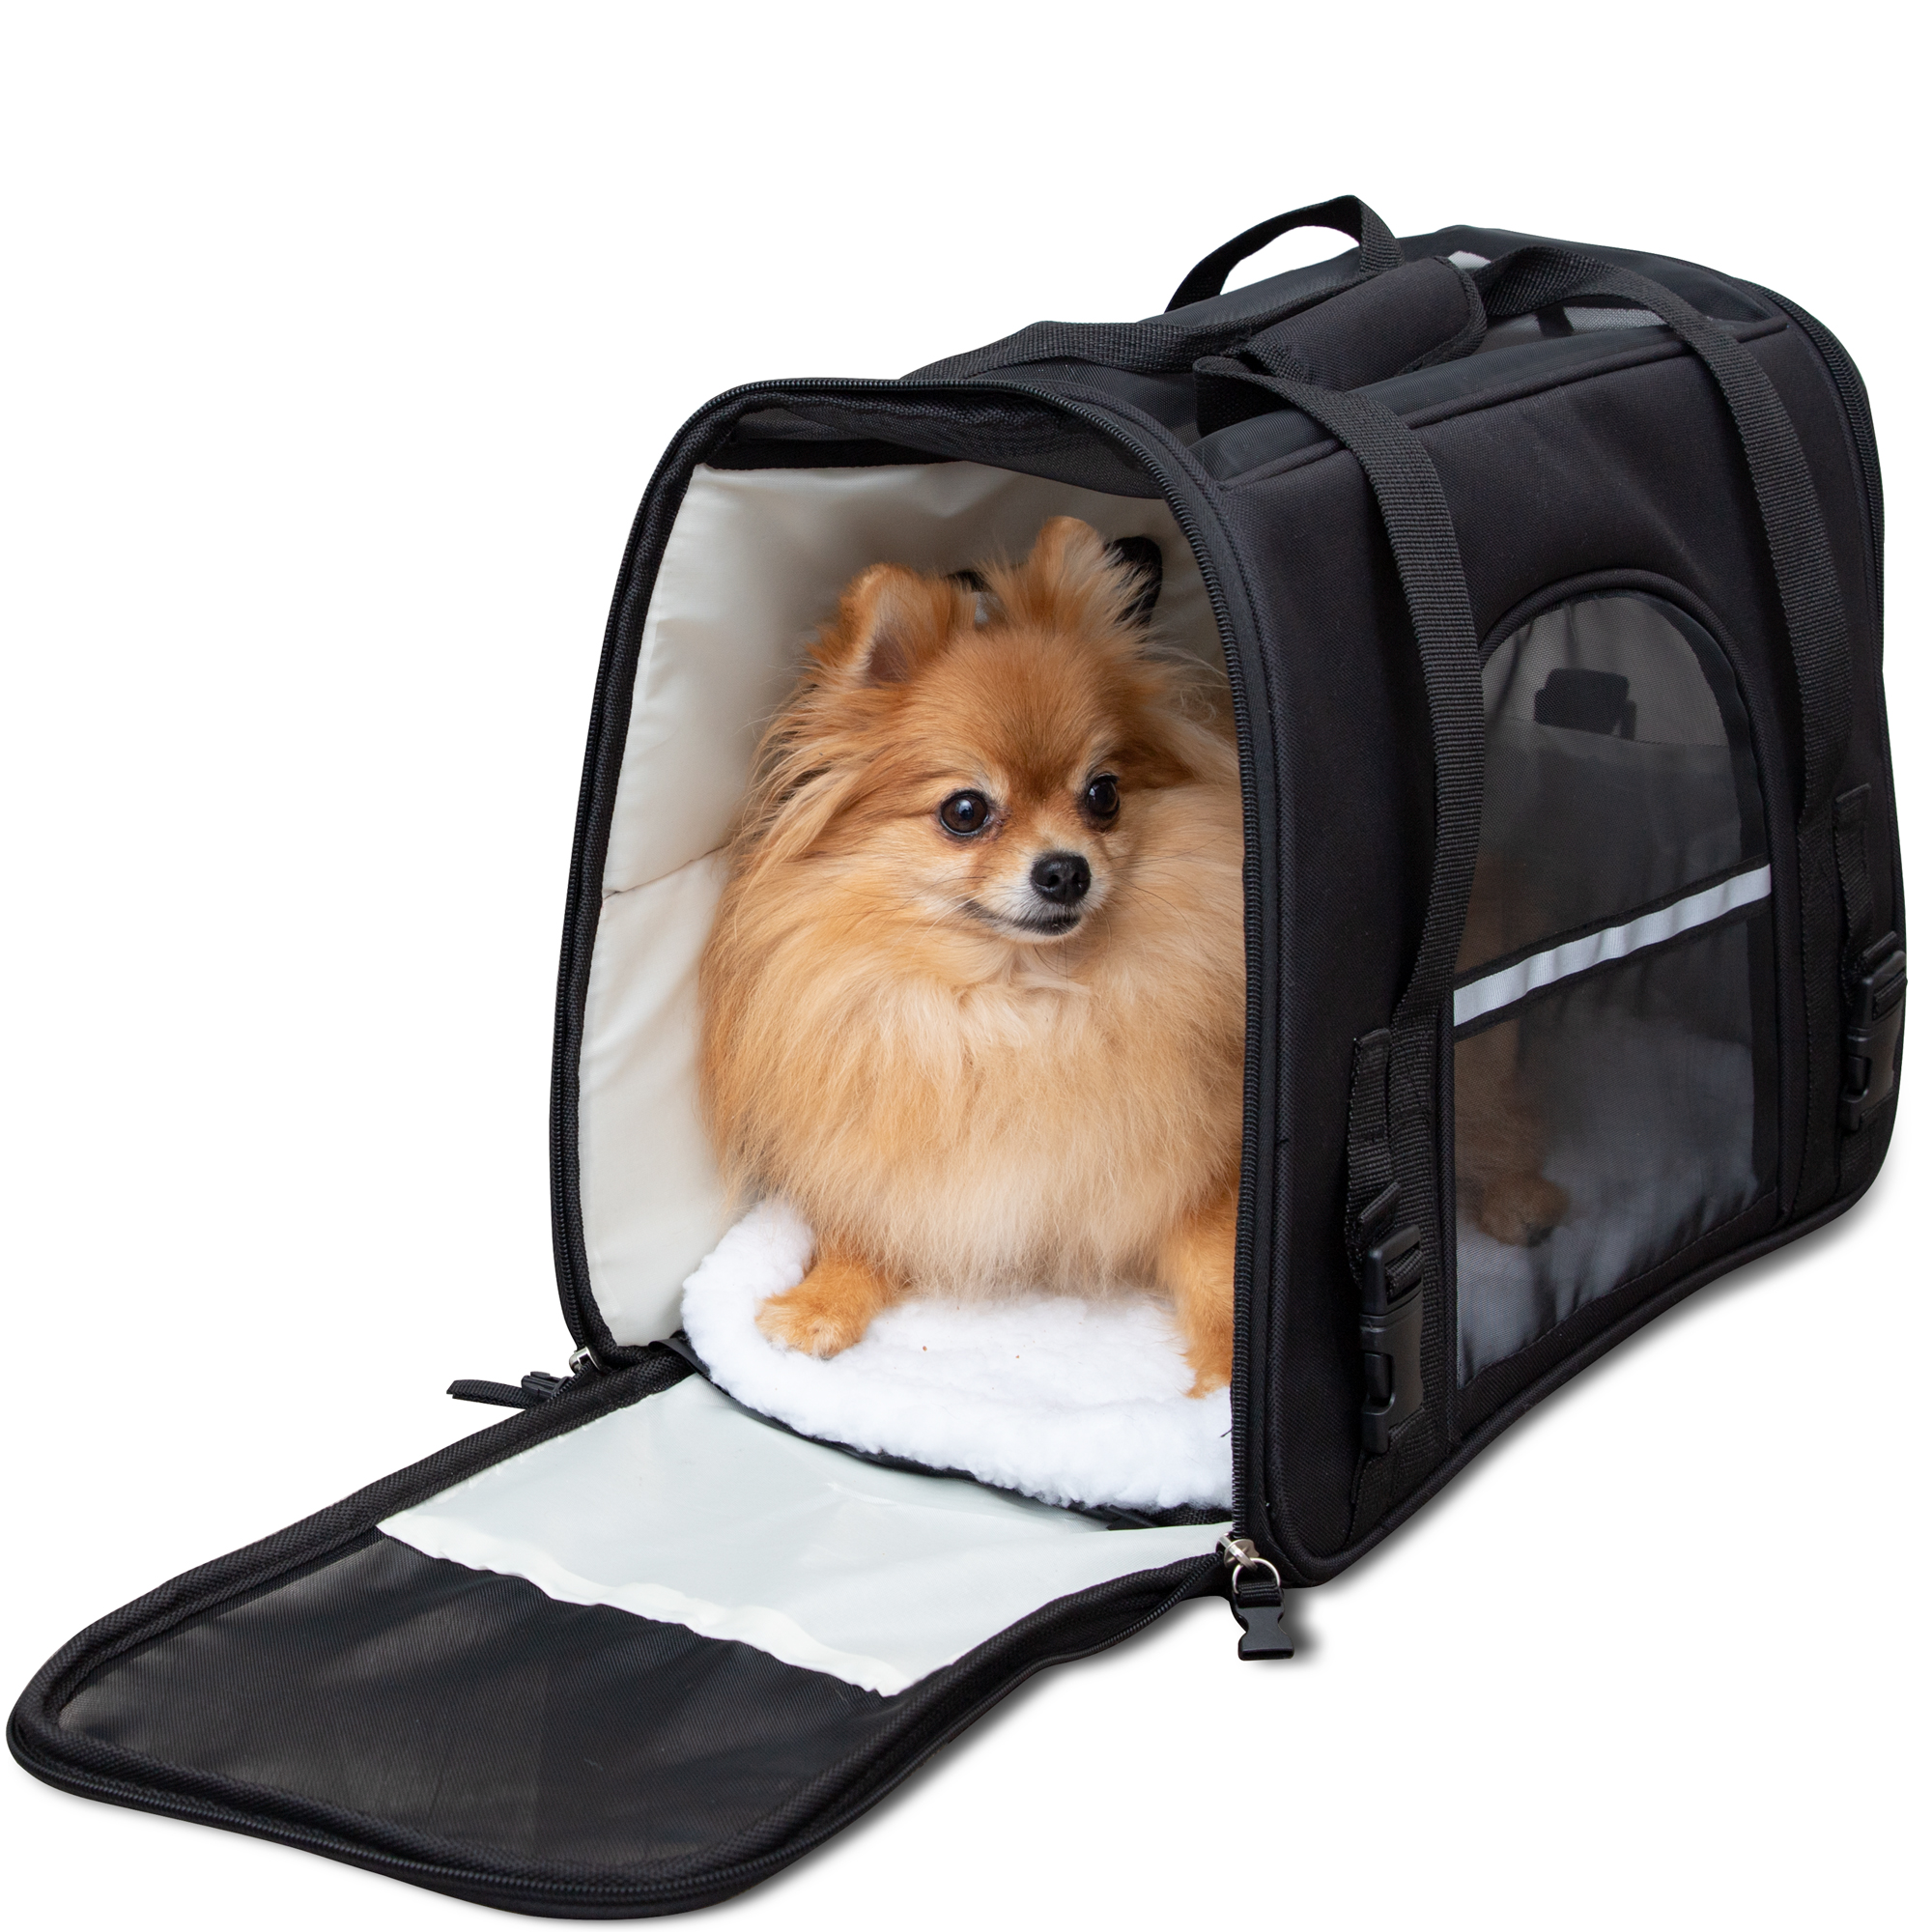 Paws Pals Pet Carrier For Dogs And Cats Soft Sided Faa Airline Approved Easy Travel Deluxe Walmart Com Walmart Com